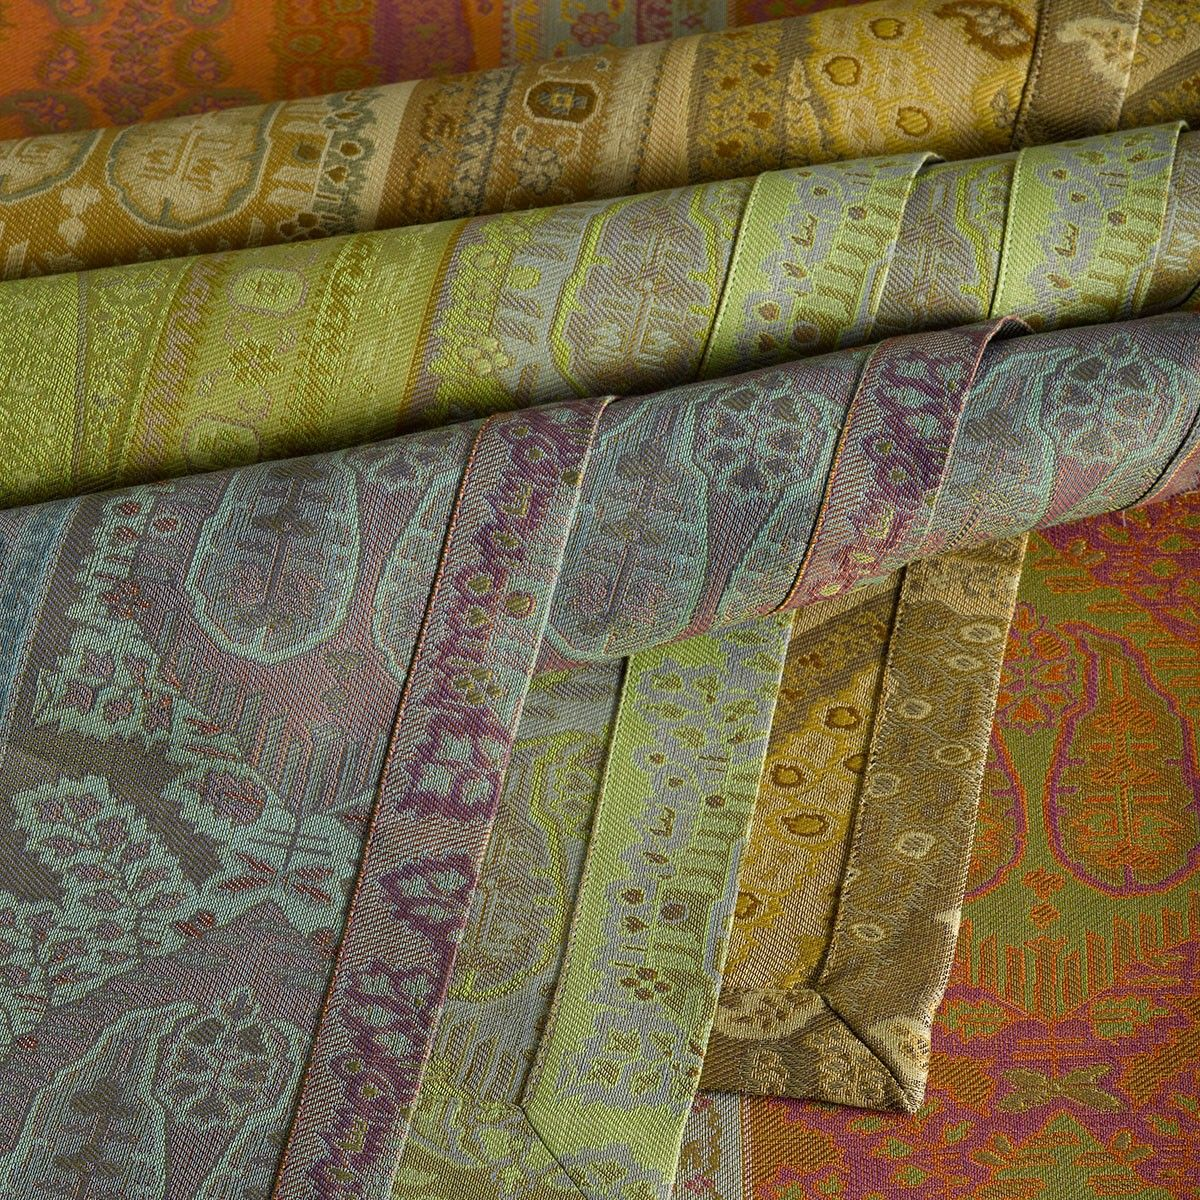 ANICHINI | Taj Table Linens - Paisley Jacquard Napkins, Placemats, Runners, and Tablecloths